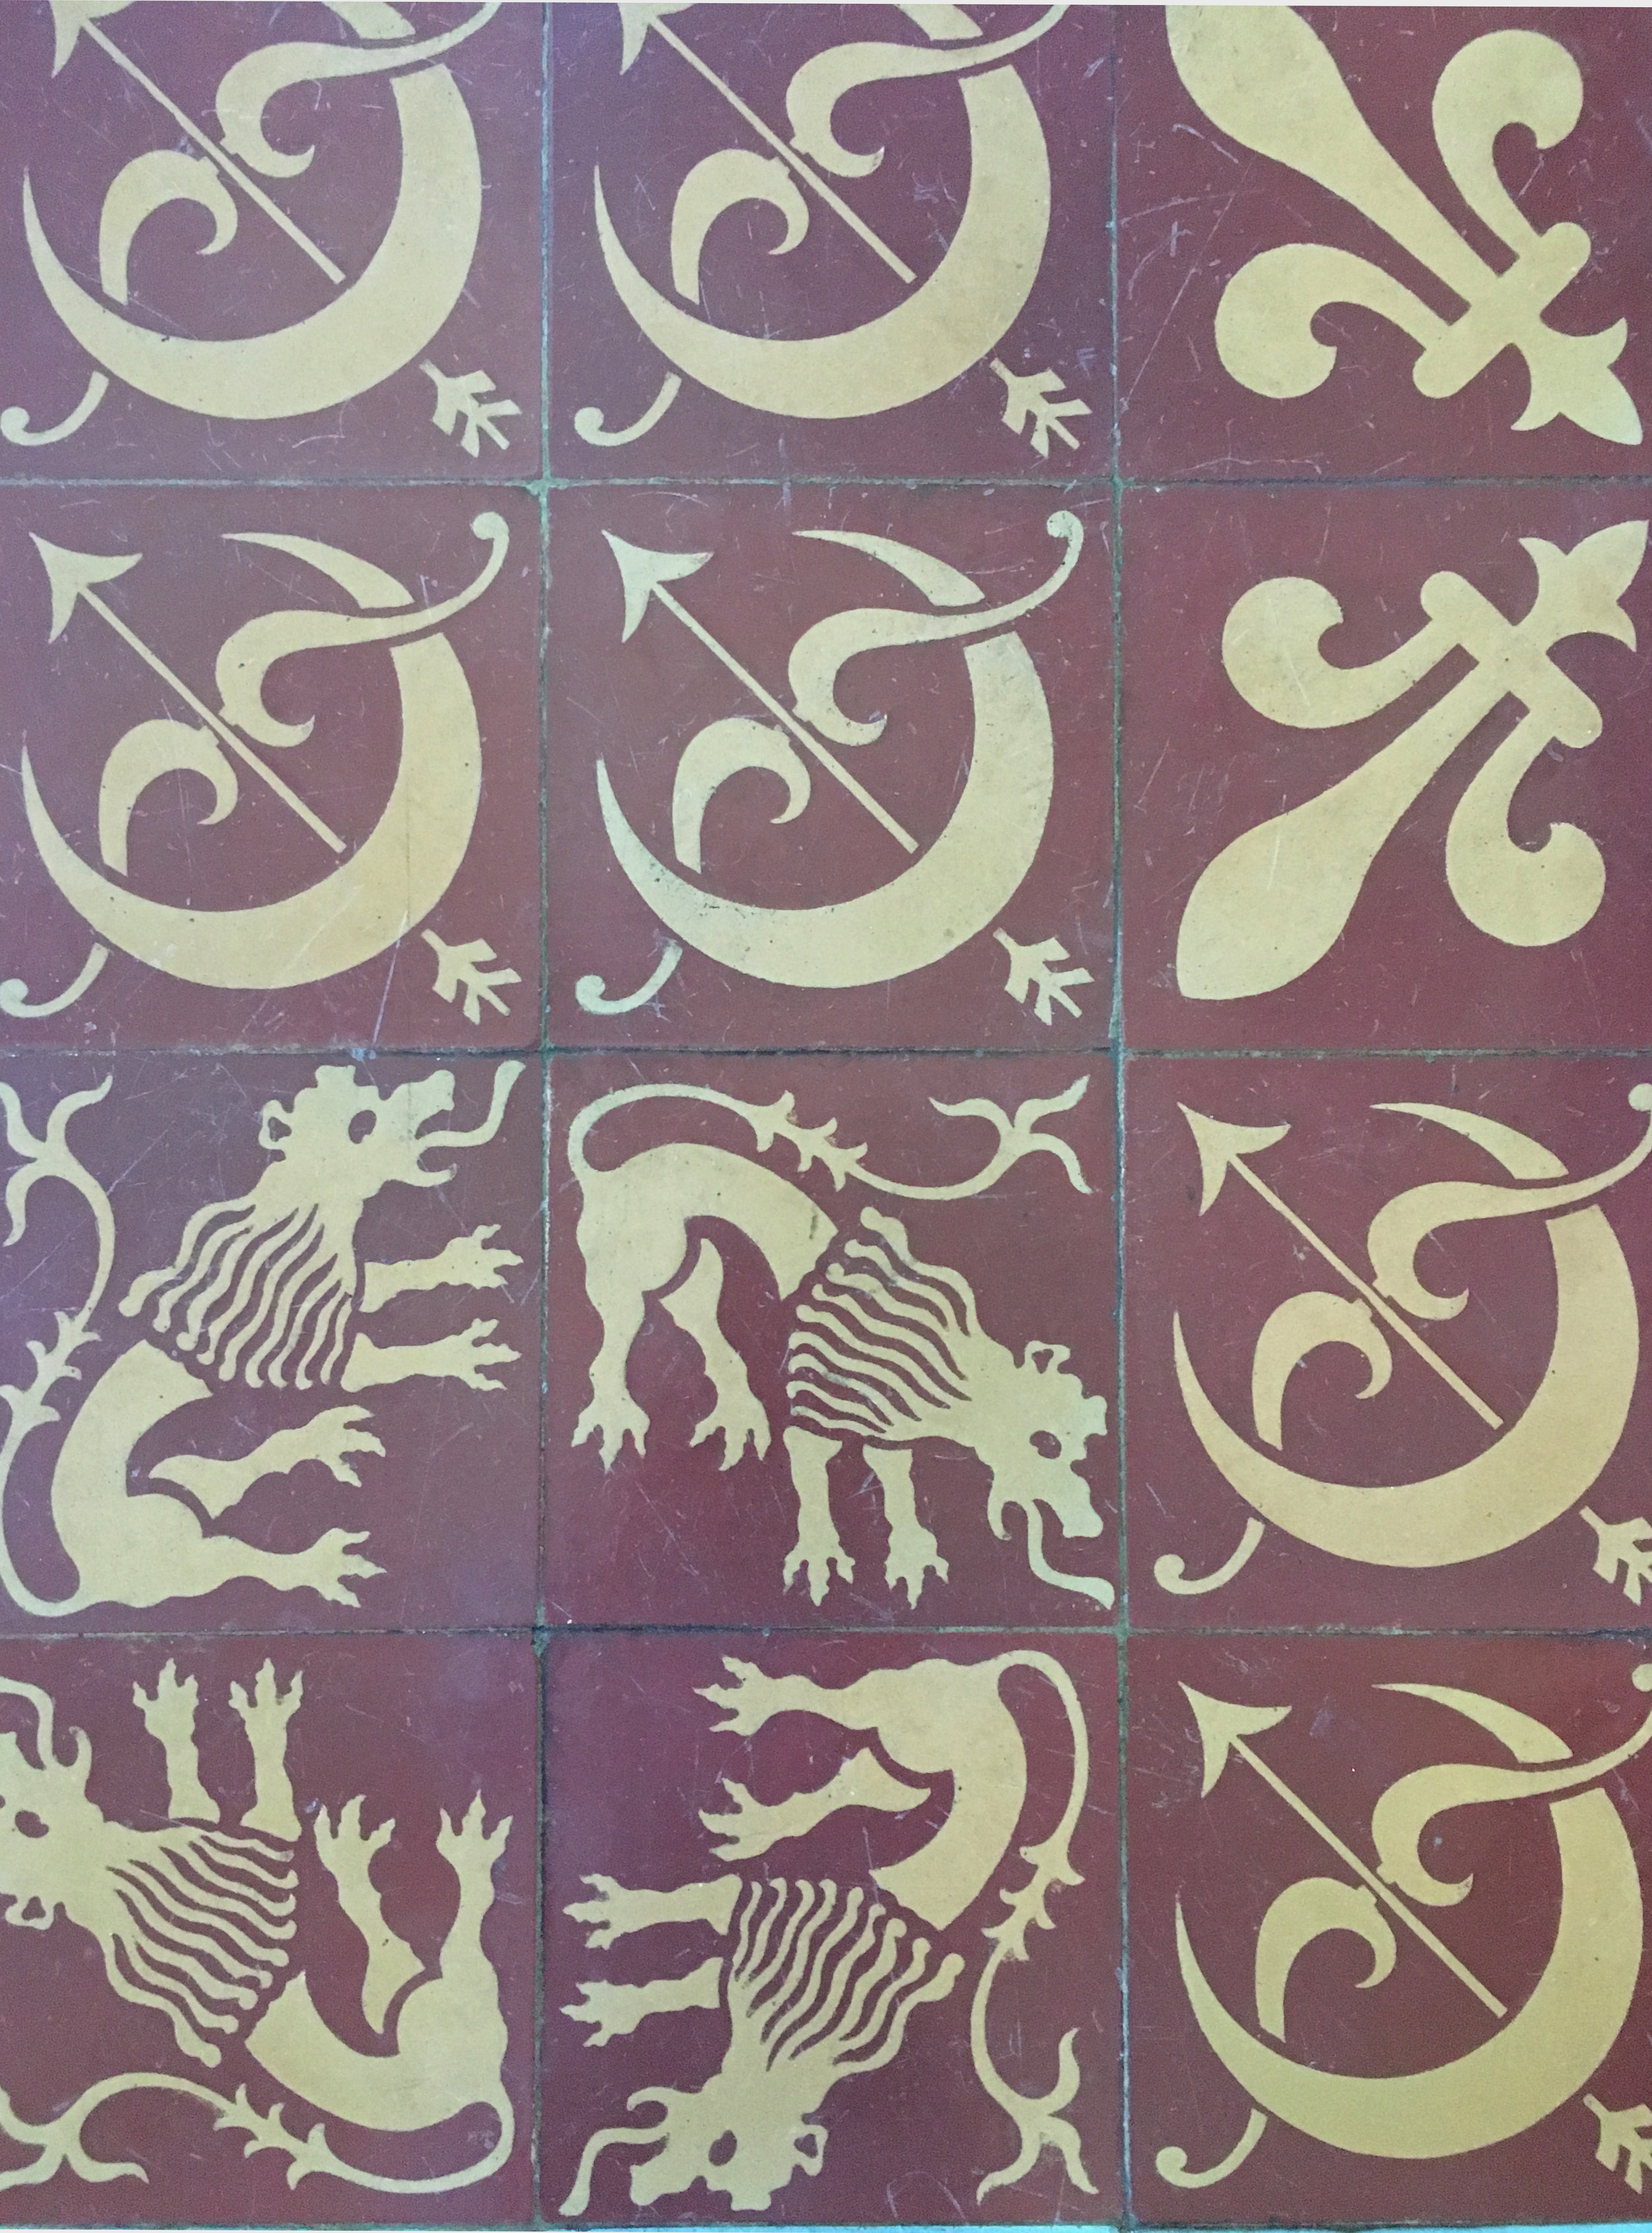 More heraldic tiles in Diane de Poitier's 16th century apartment area in Ancy le Franc Château (photograph J. Cook). (These tiles may be copies)